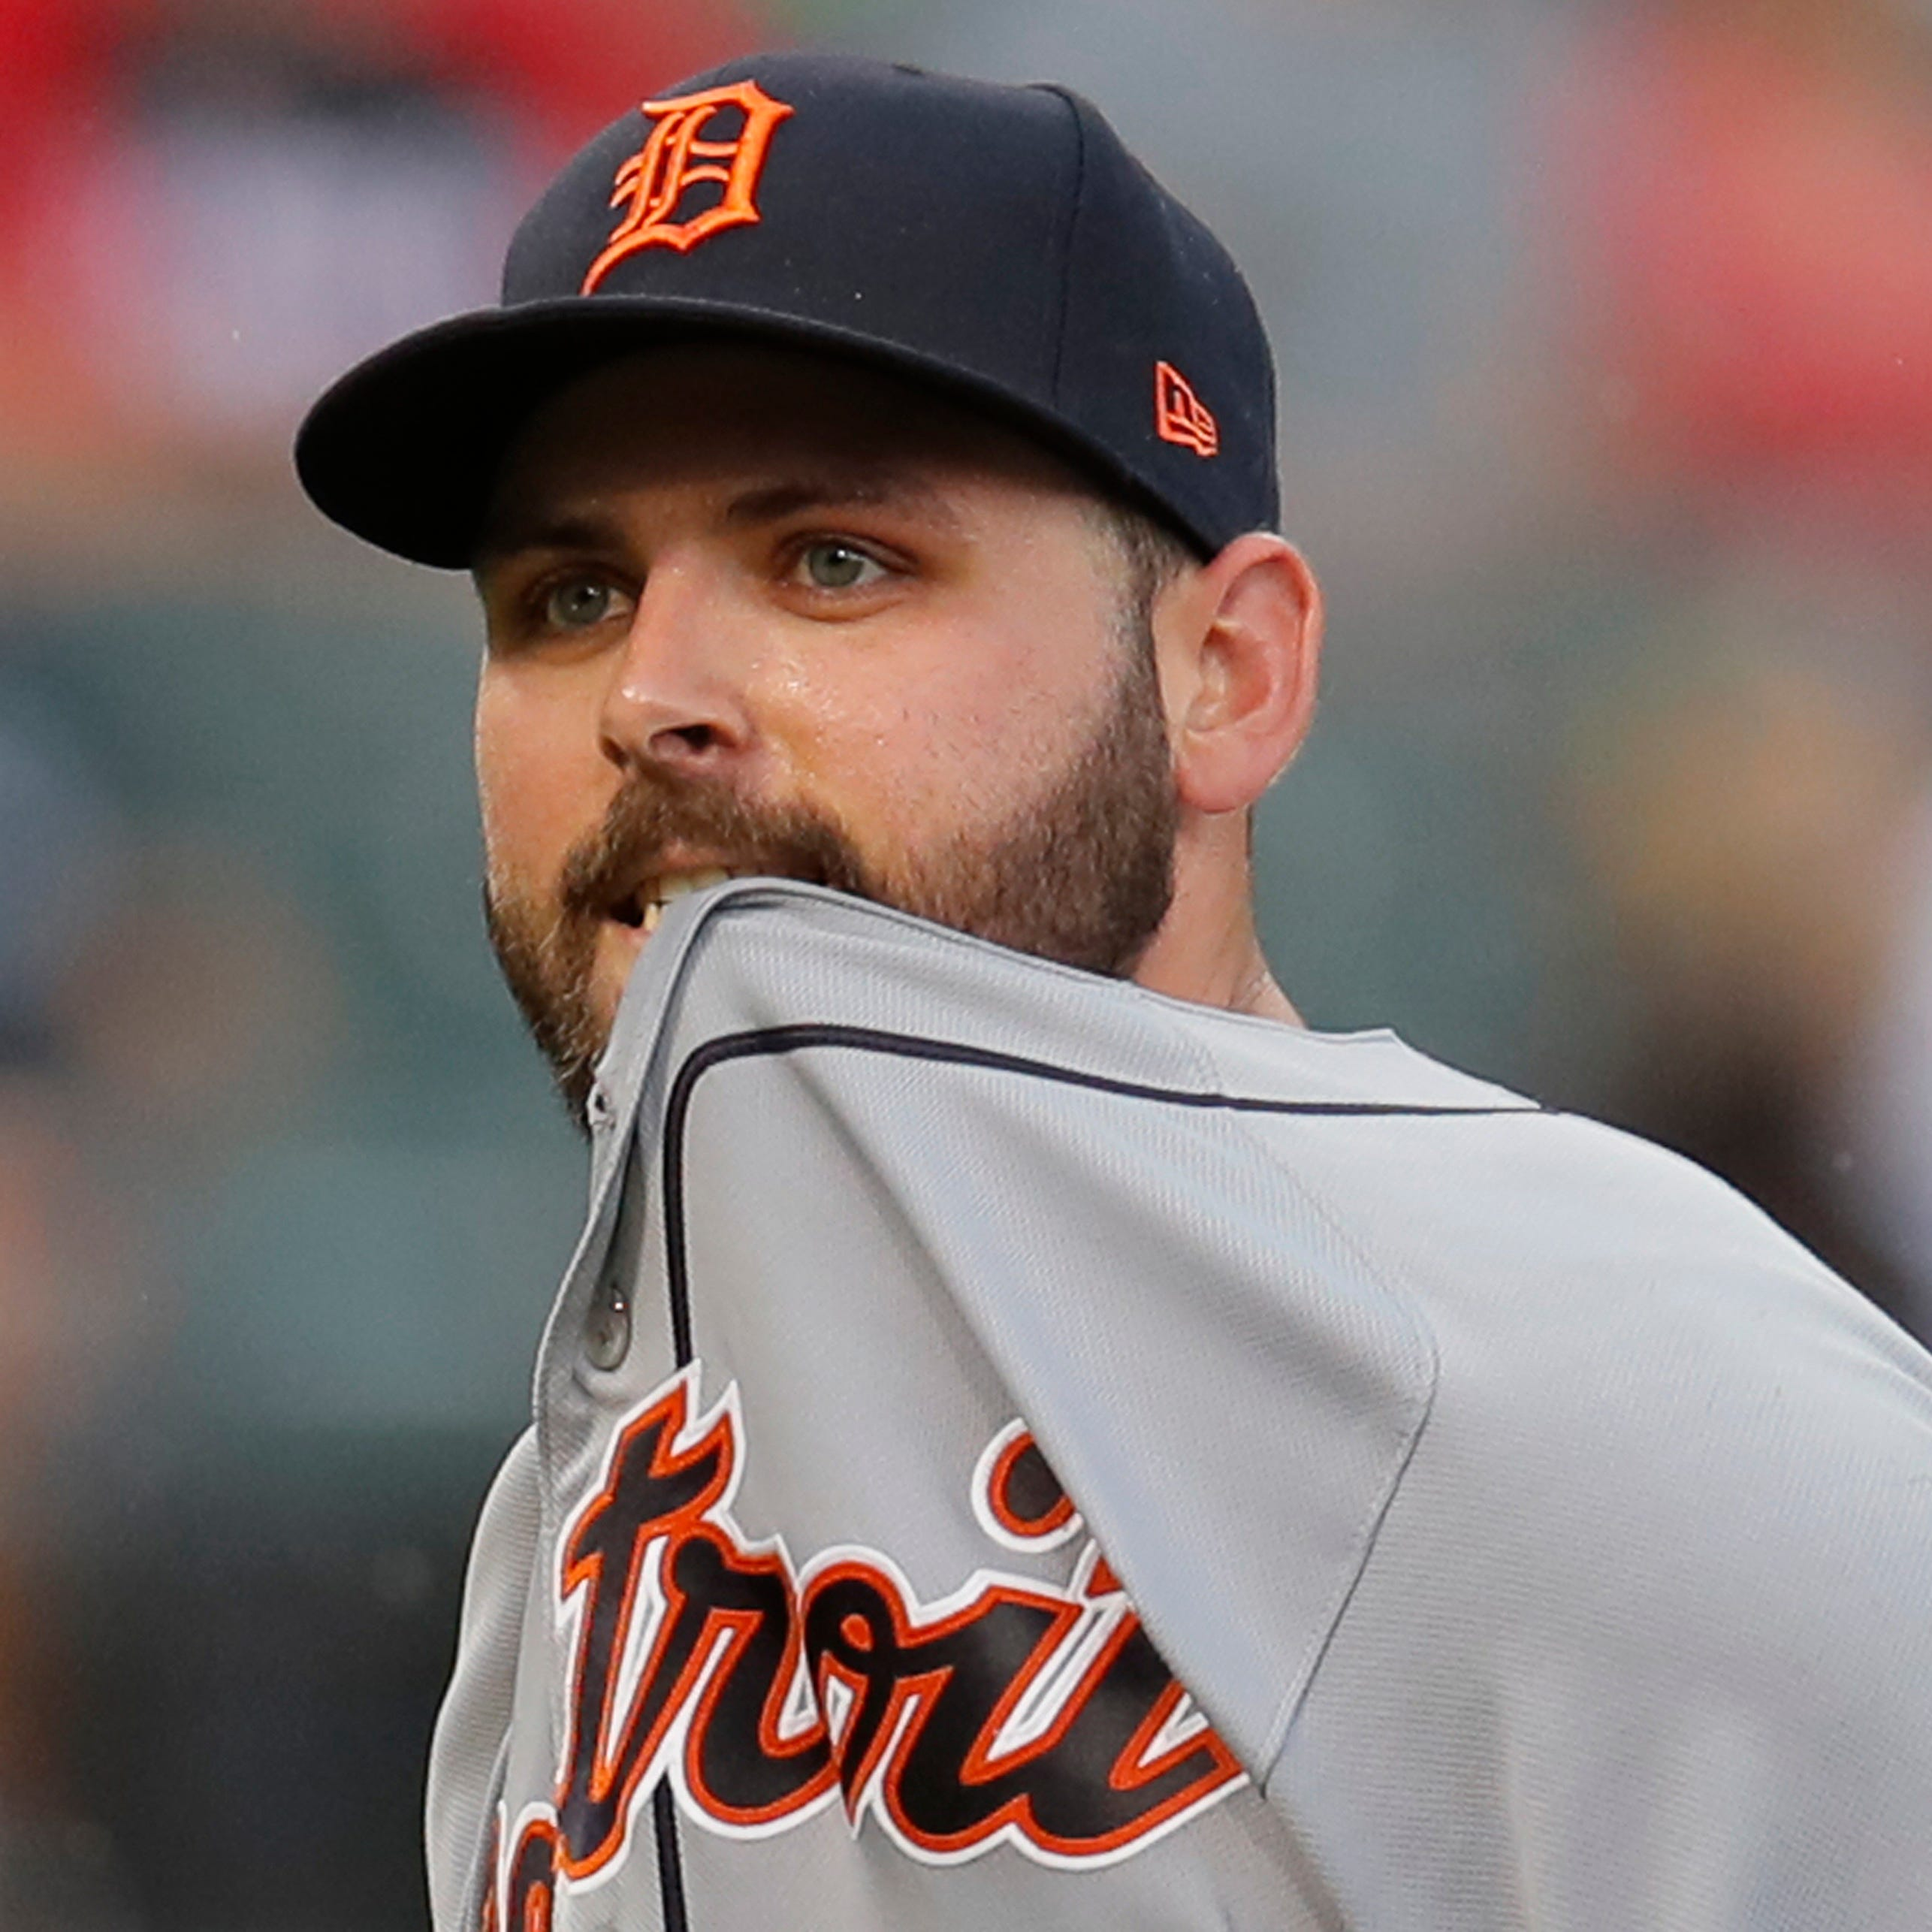 Tigers' Michael Fulmer copes with Tommy John: I'm letting teammates down